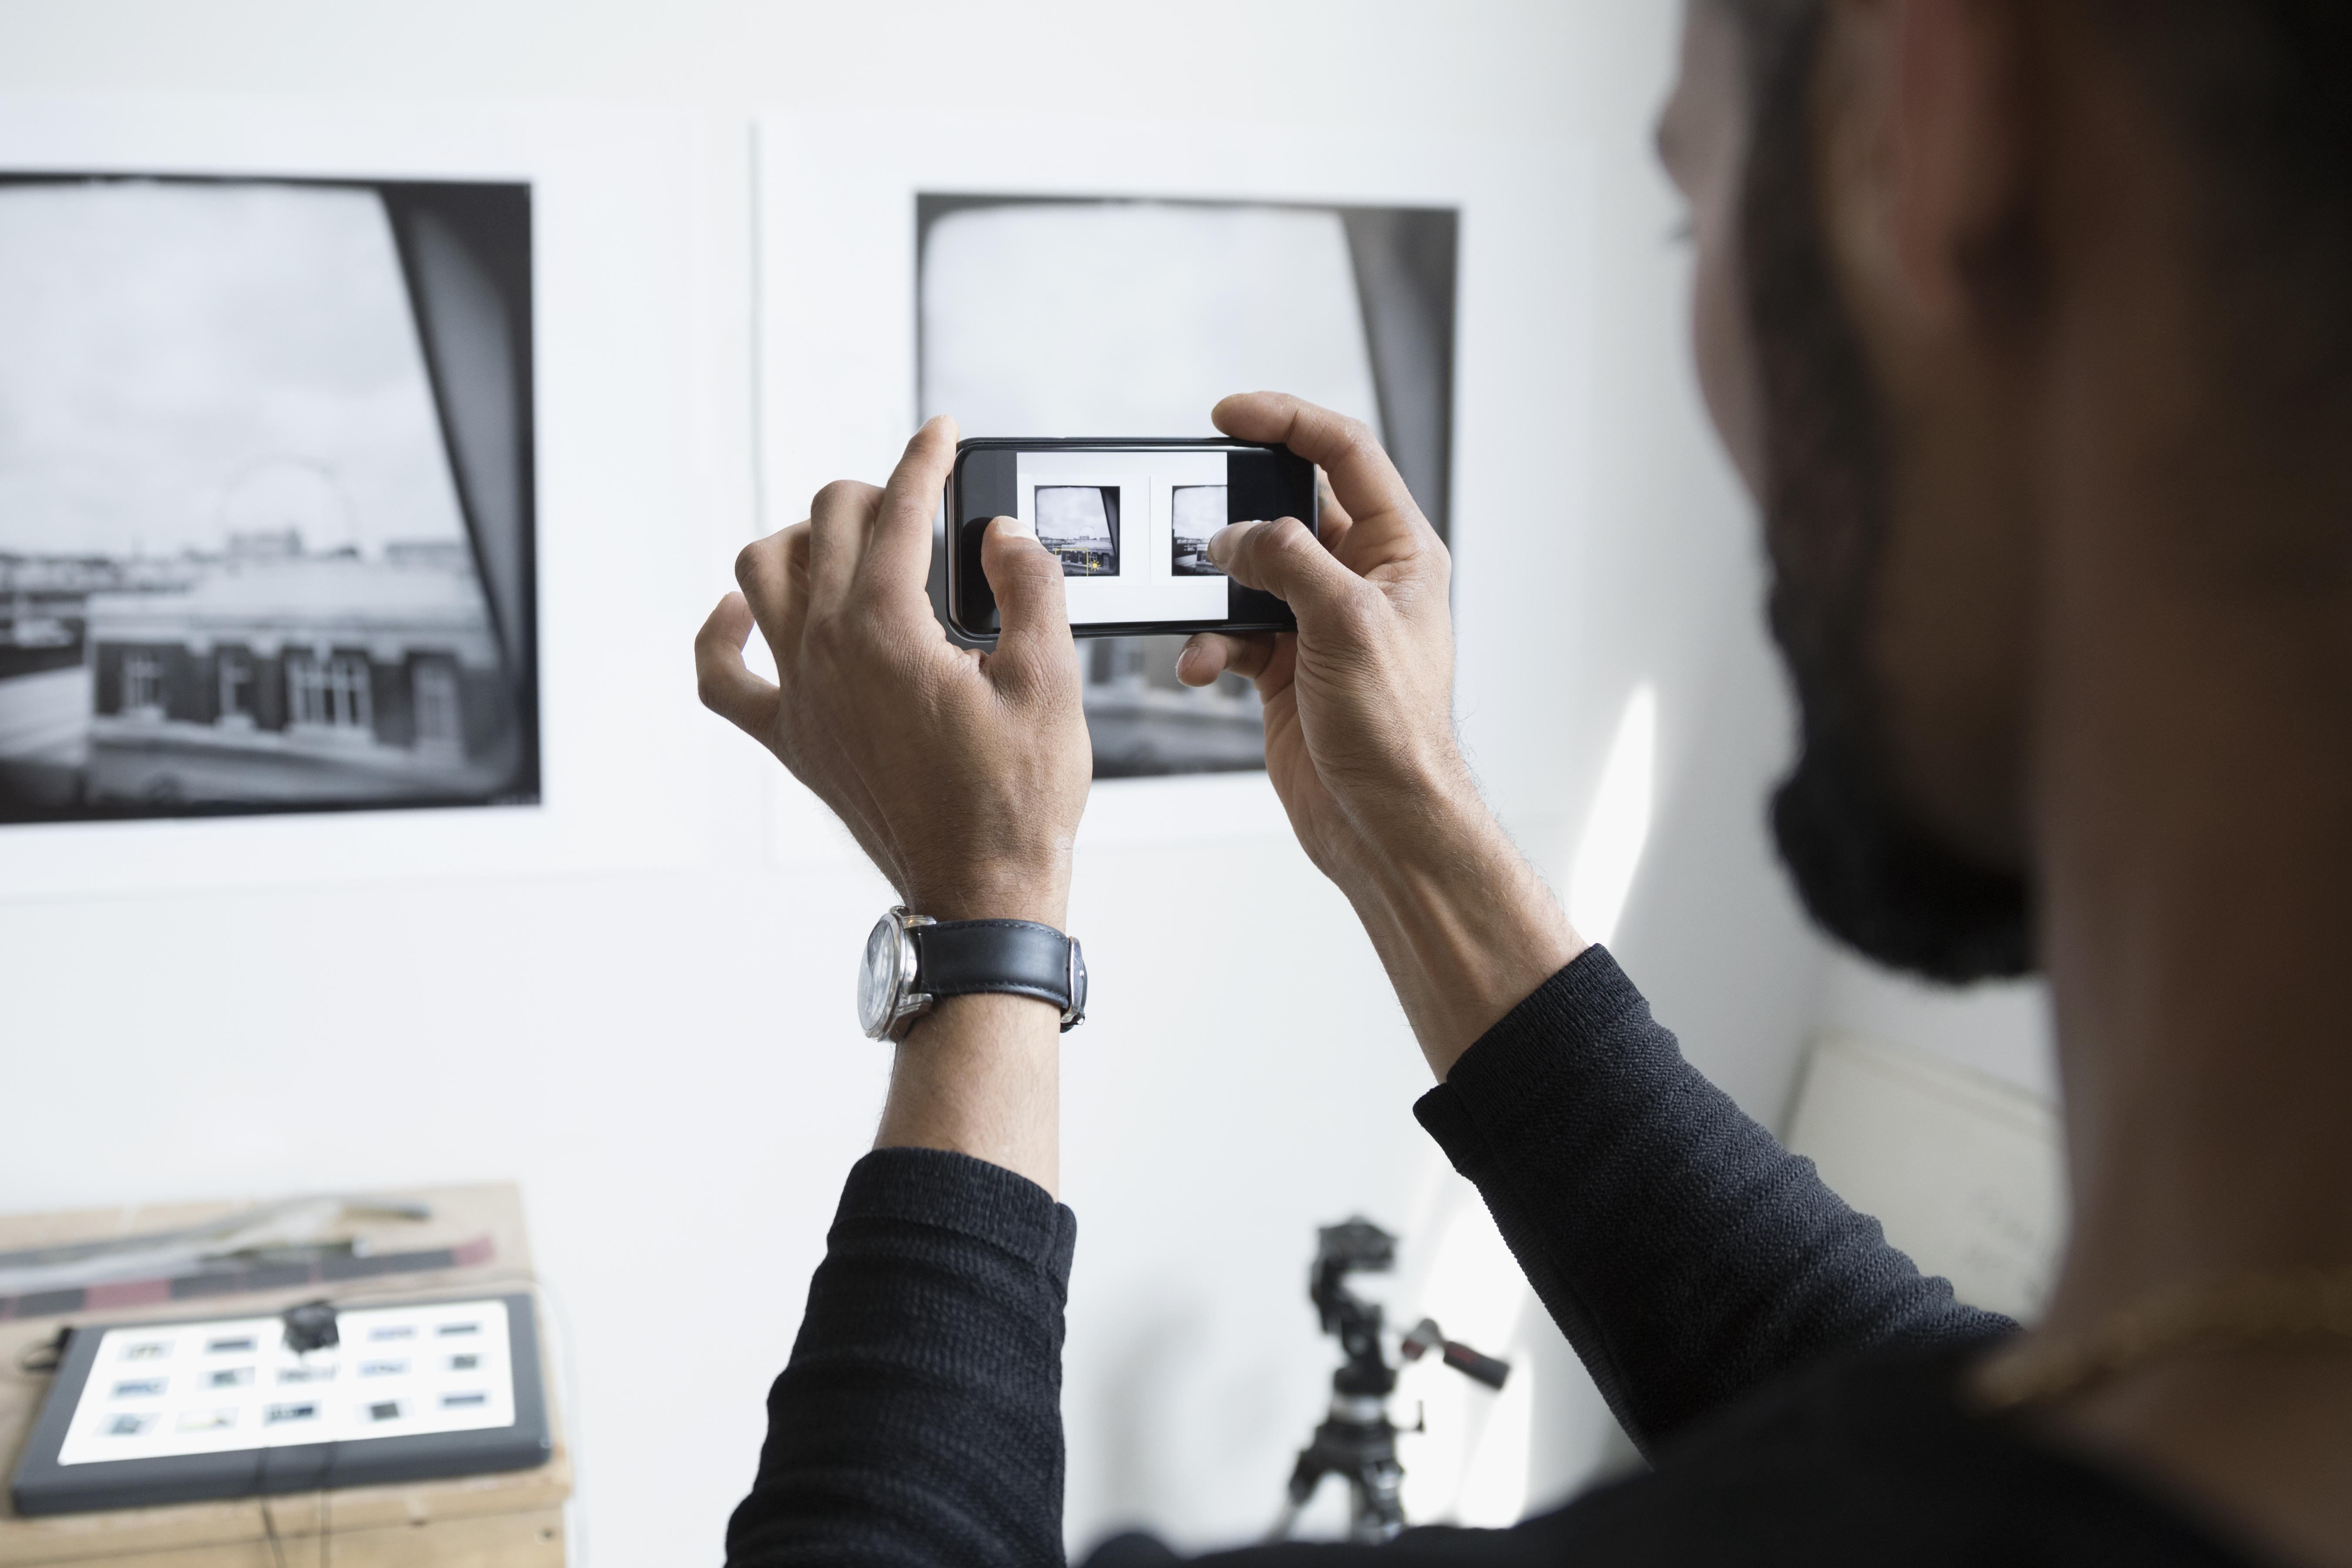 Male photographer with camera phone photographing prints on wall in art studio